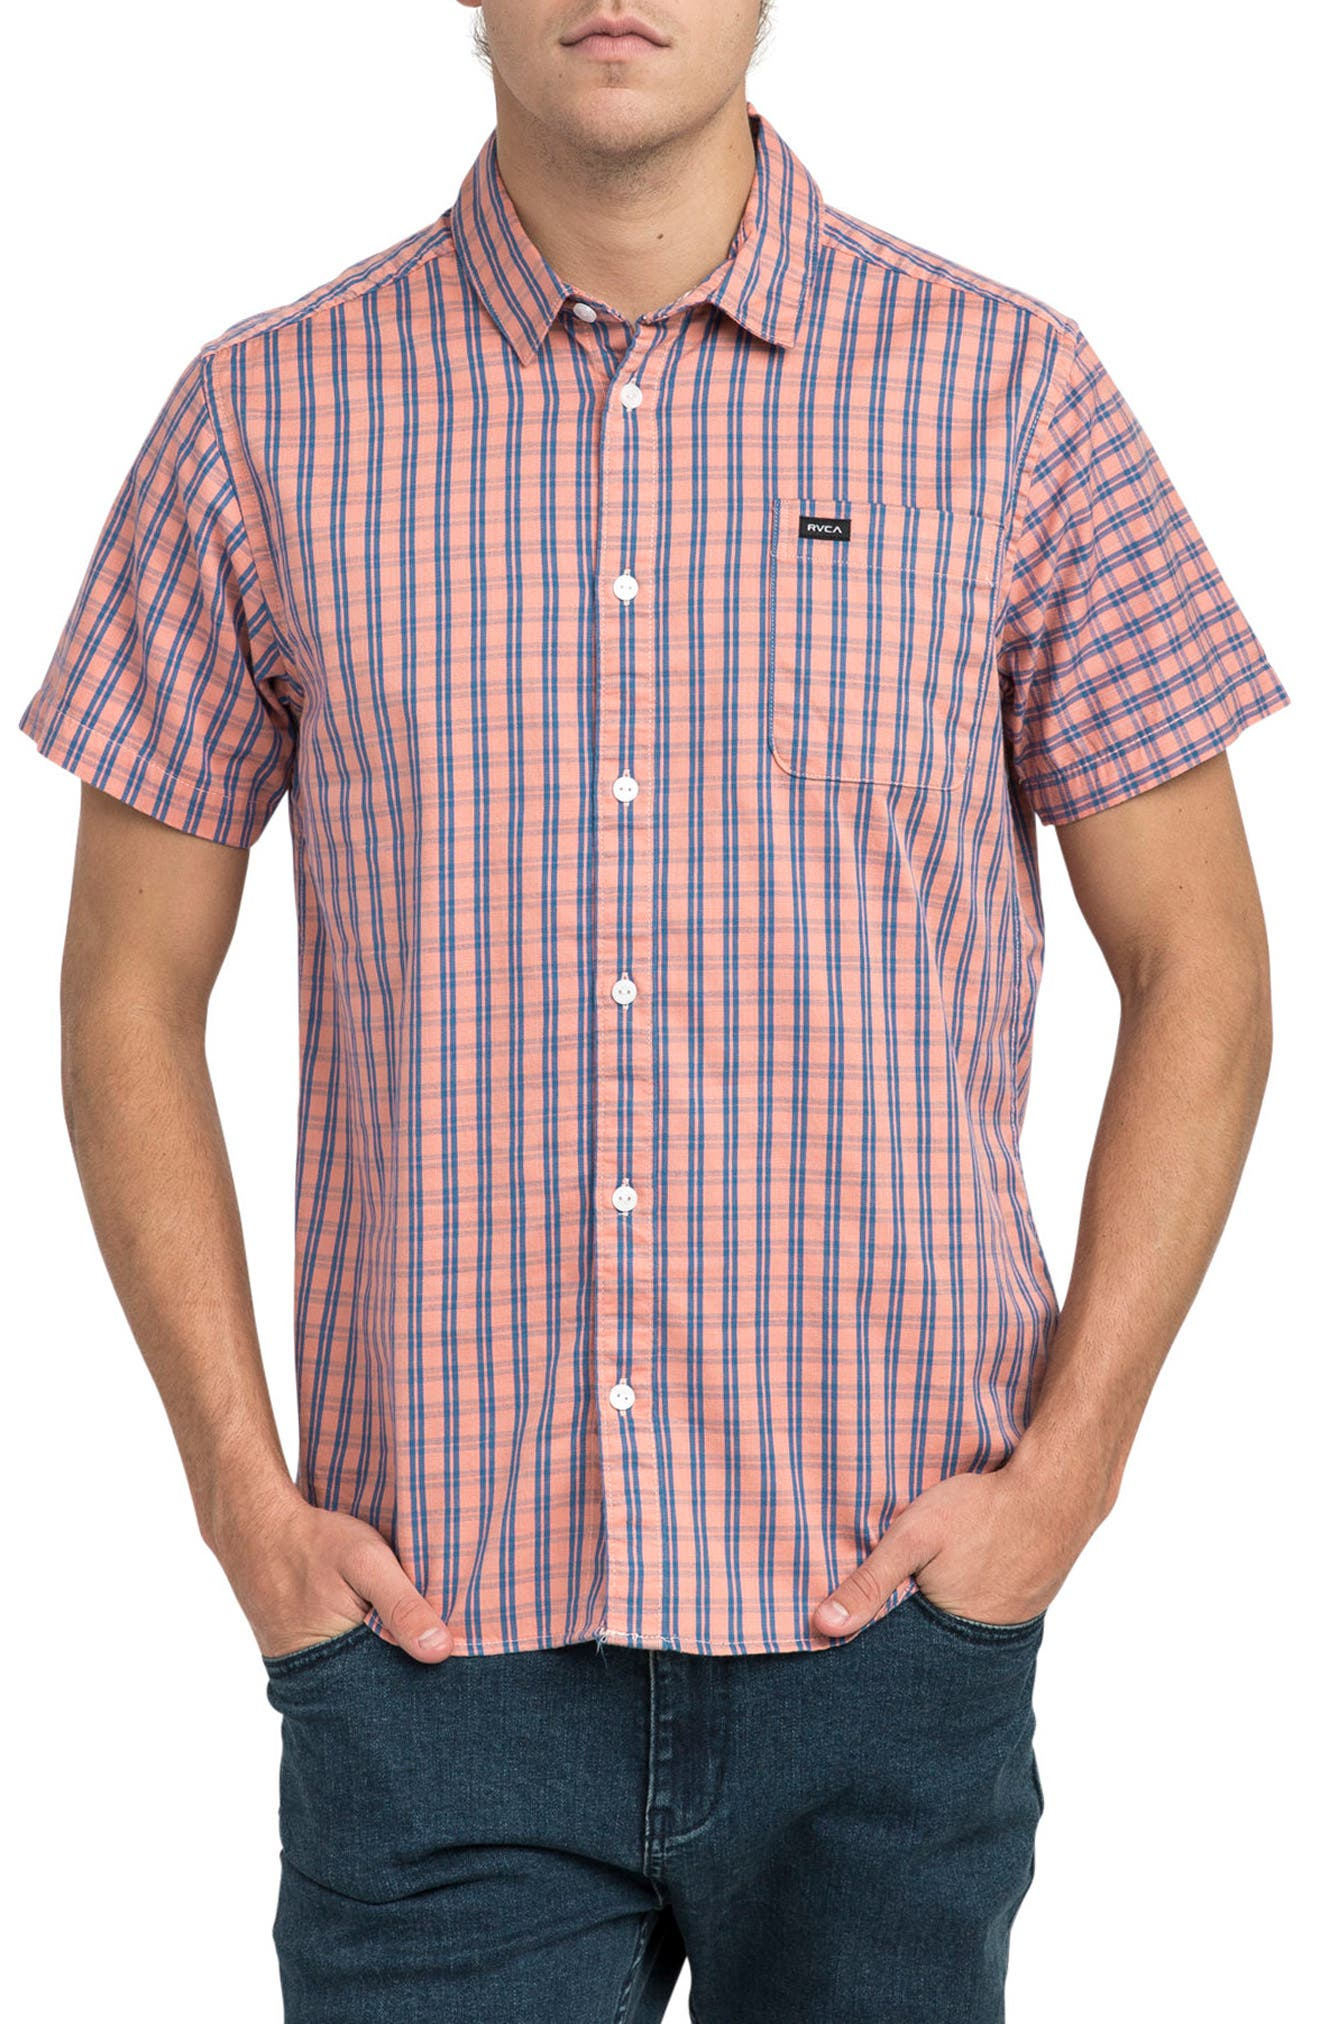 Delivery Woven Shirt,                             Main thumbnail 1, color,                             200